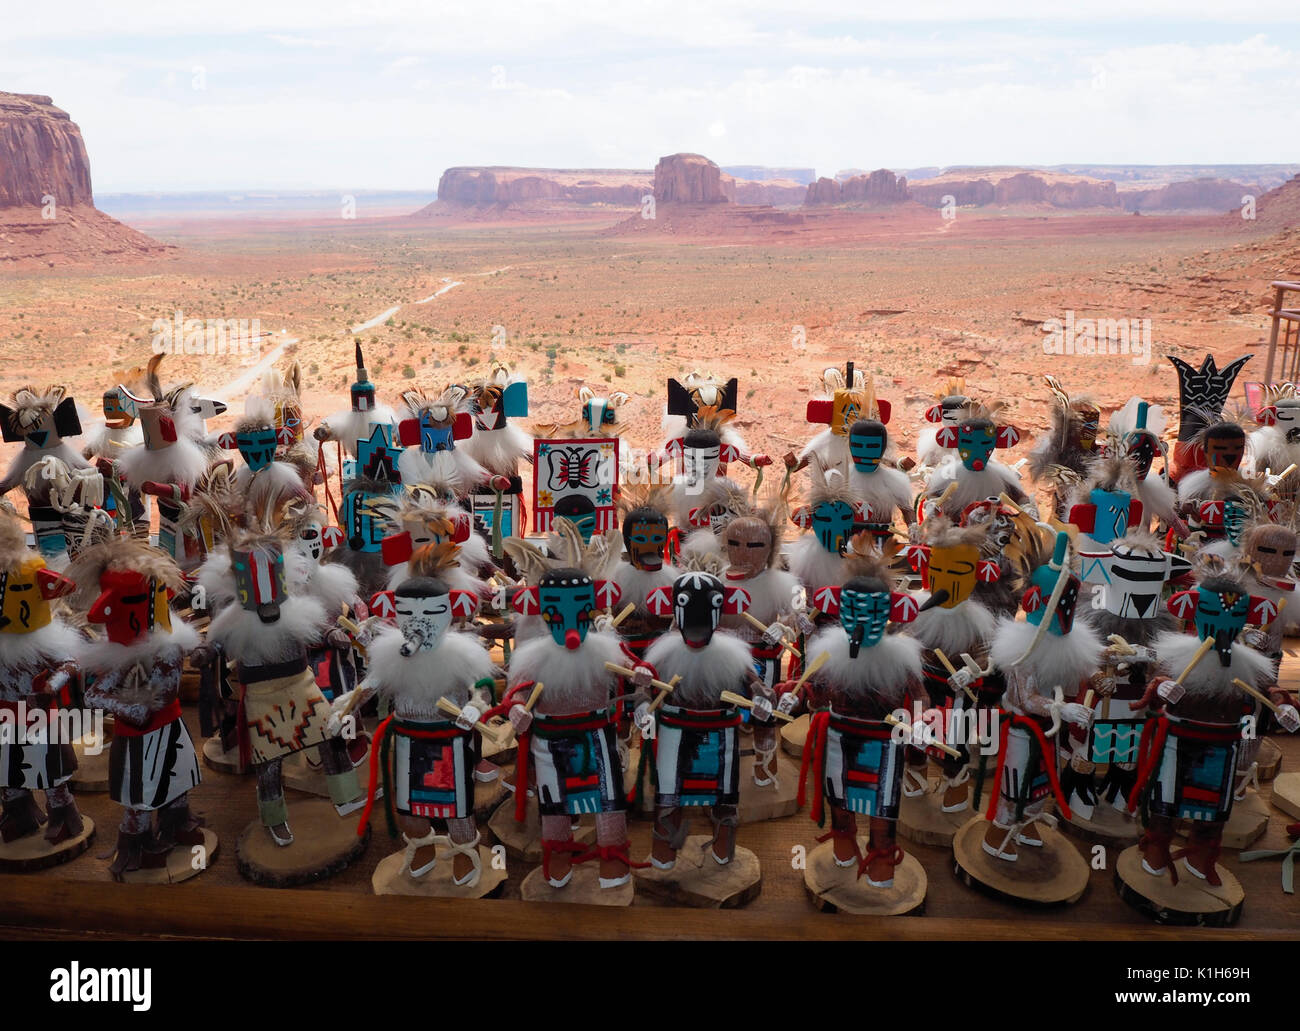 Monument Valley, USA - 25 July 2016: Traditional hand crafted Native American figures displayed for sale at a souvenir shop at Monument Valley Navajo  - Stock Image